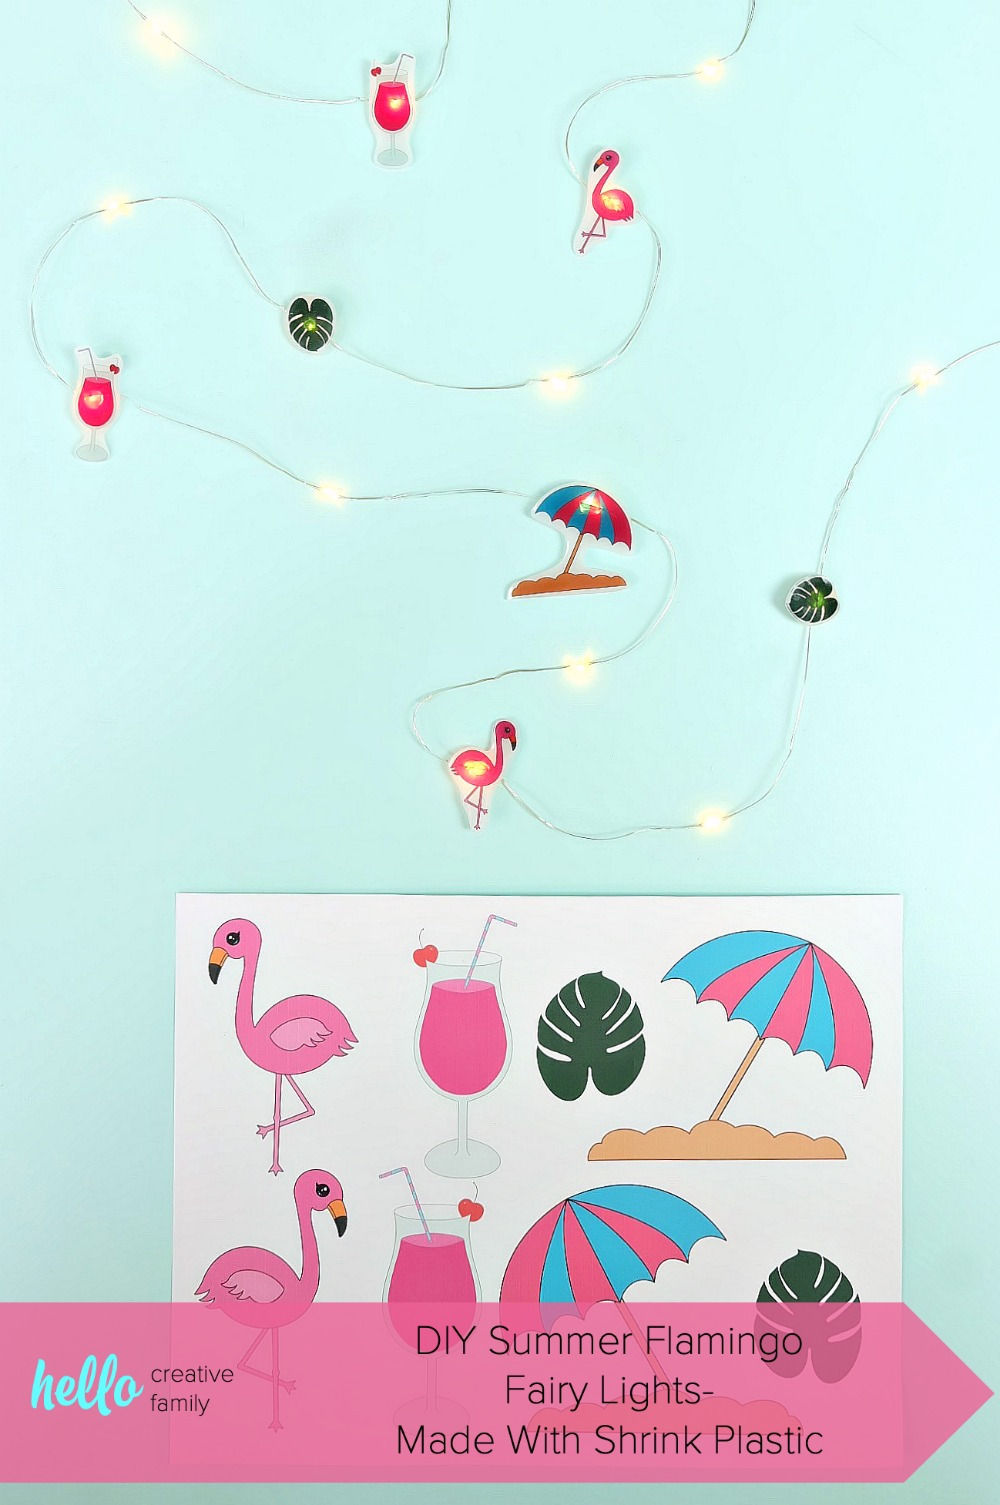 Create an adorable set of DIY Summer Flamingo Fairy Lights using shrink plastic (aka Shrinky Dinks) and our free summer flamingo printable. Perfect for summer decor or tropical themed luau birthday parties! Fun and oh so easy to make! #ShrinkyDinks #Flamingo #SummerCrafts #DIY